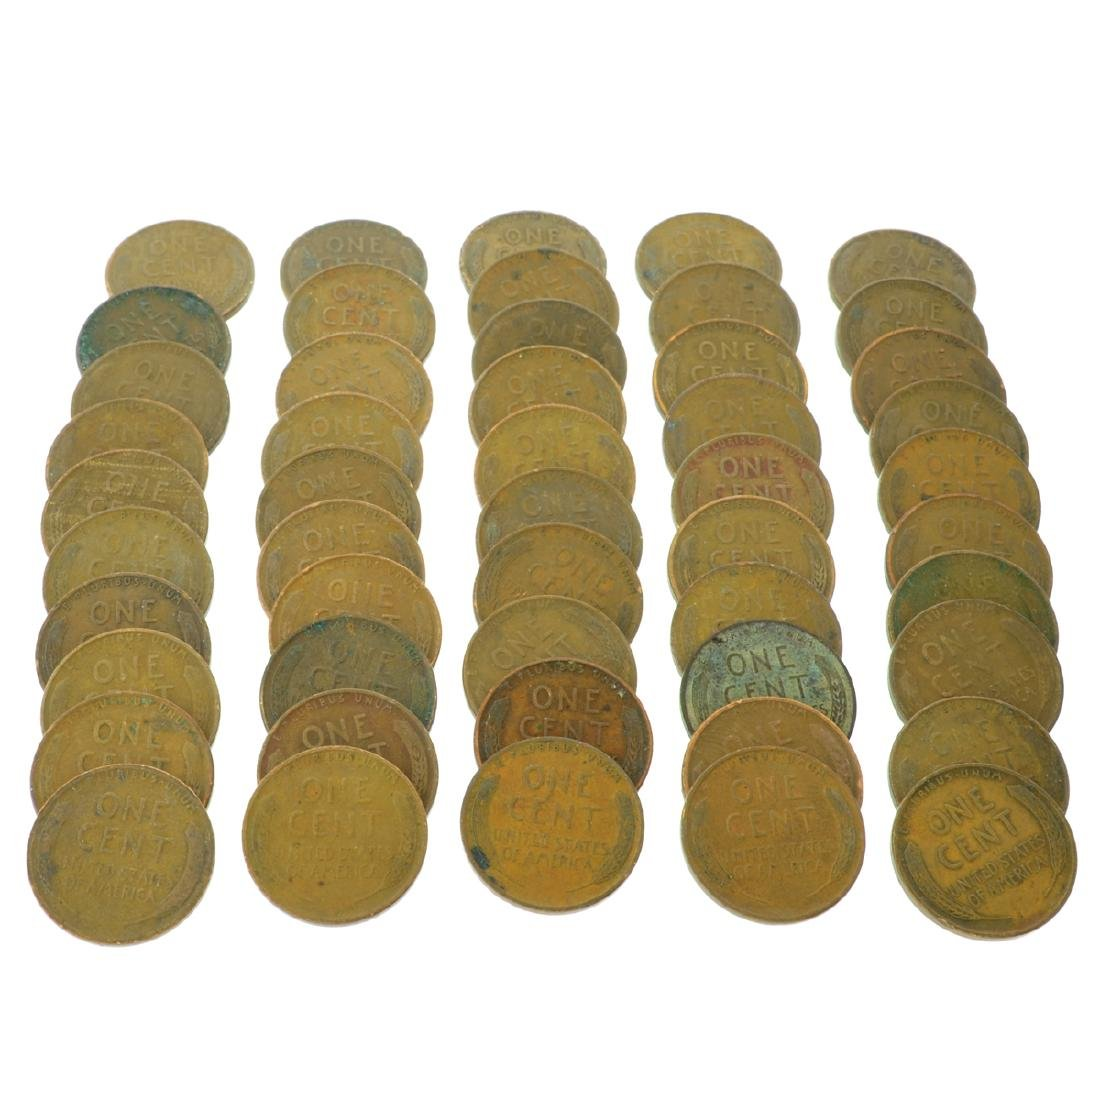 50 Rare 1930's Lincoln Cents - Investment - 2